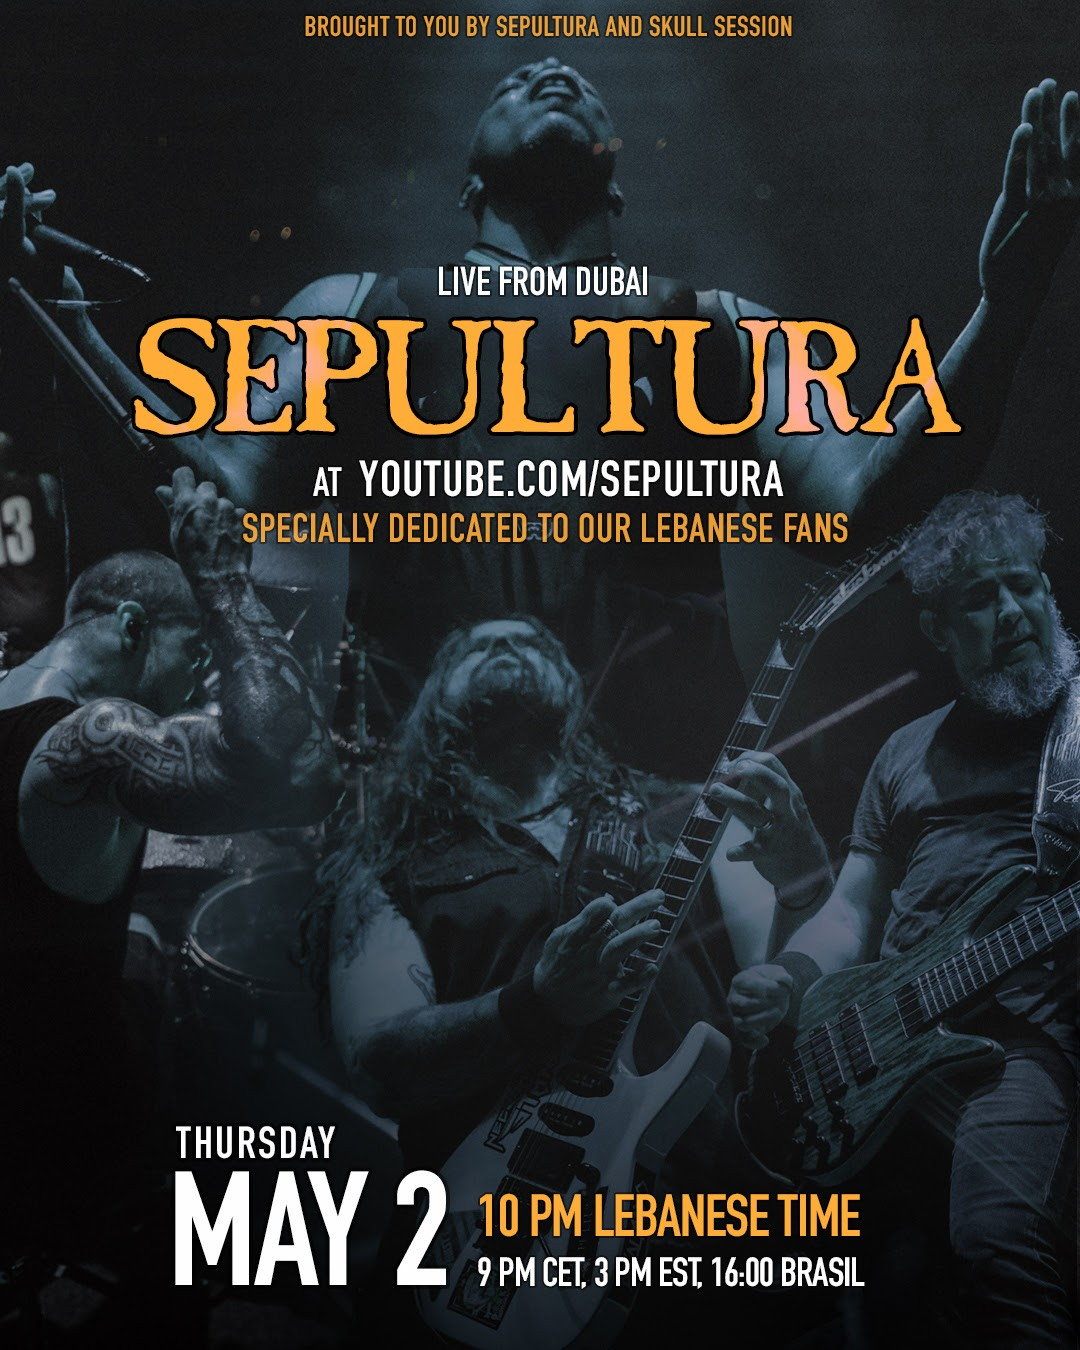 Sepultura - Banned To Perform In Lebanon: To Stream Their Dubai Performance